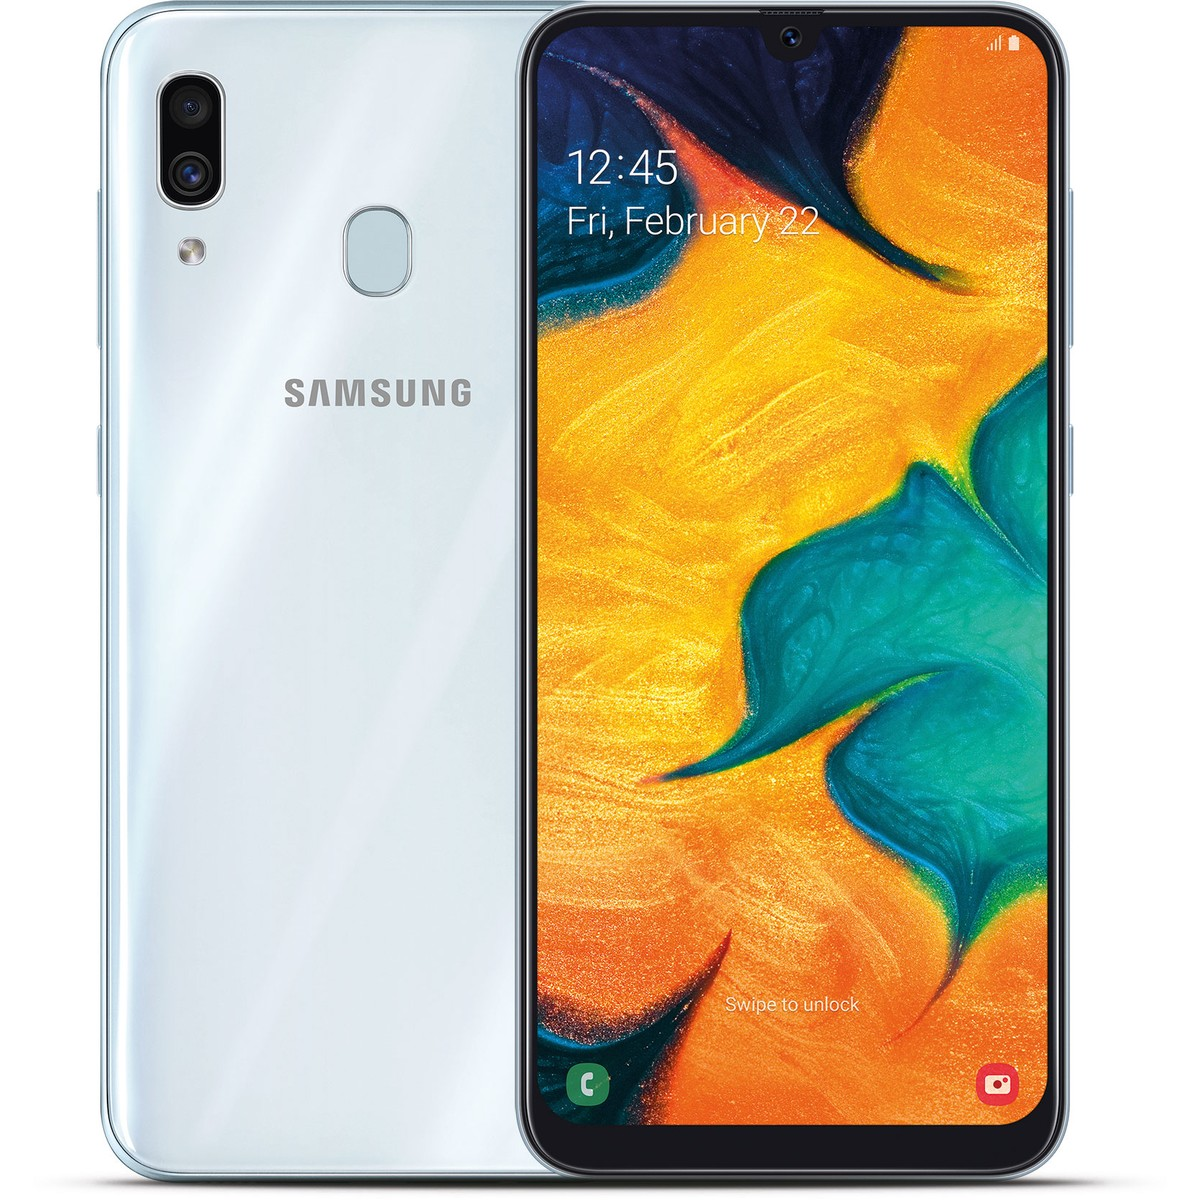 MOBILE PHONE SAMSUNG 6.4 OCTA CORE 1.8GHZ 4GB 64GB DUAL SIM GALAXY A30 - WHITE كفالة شبكة - - ,Android Smartphone